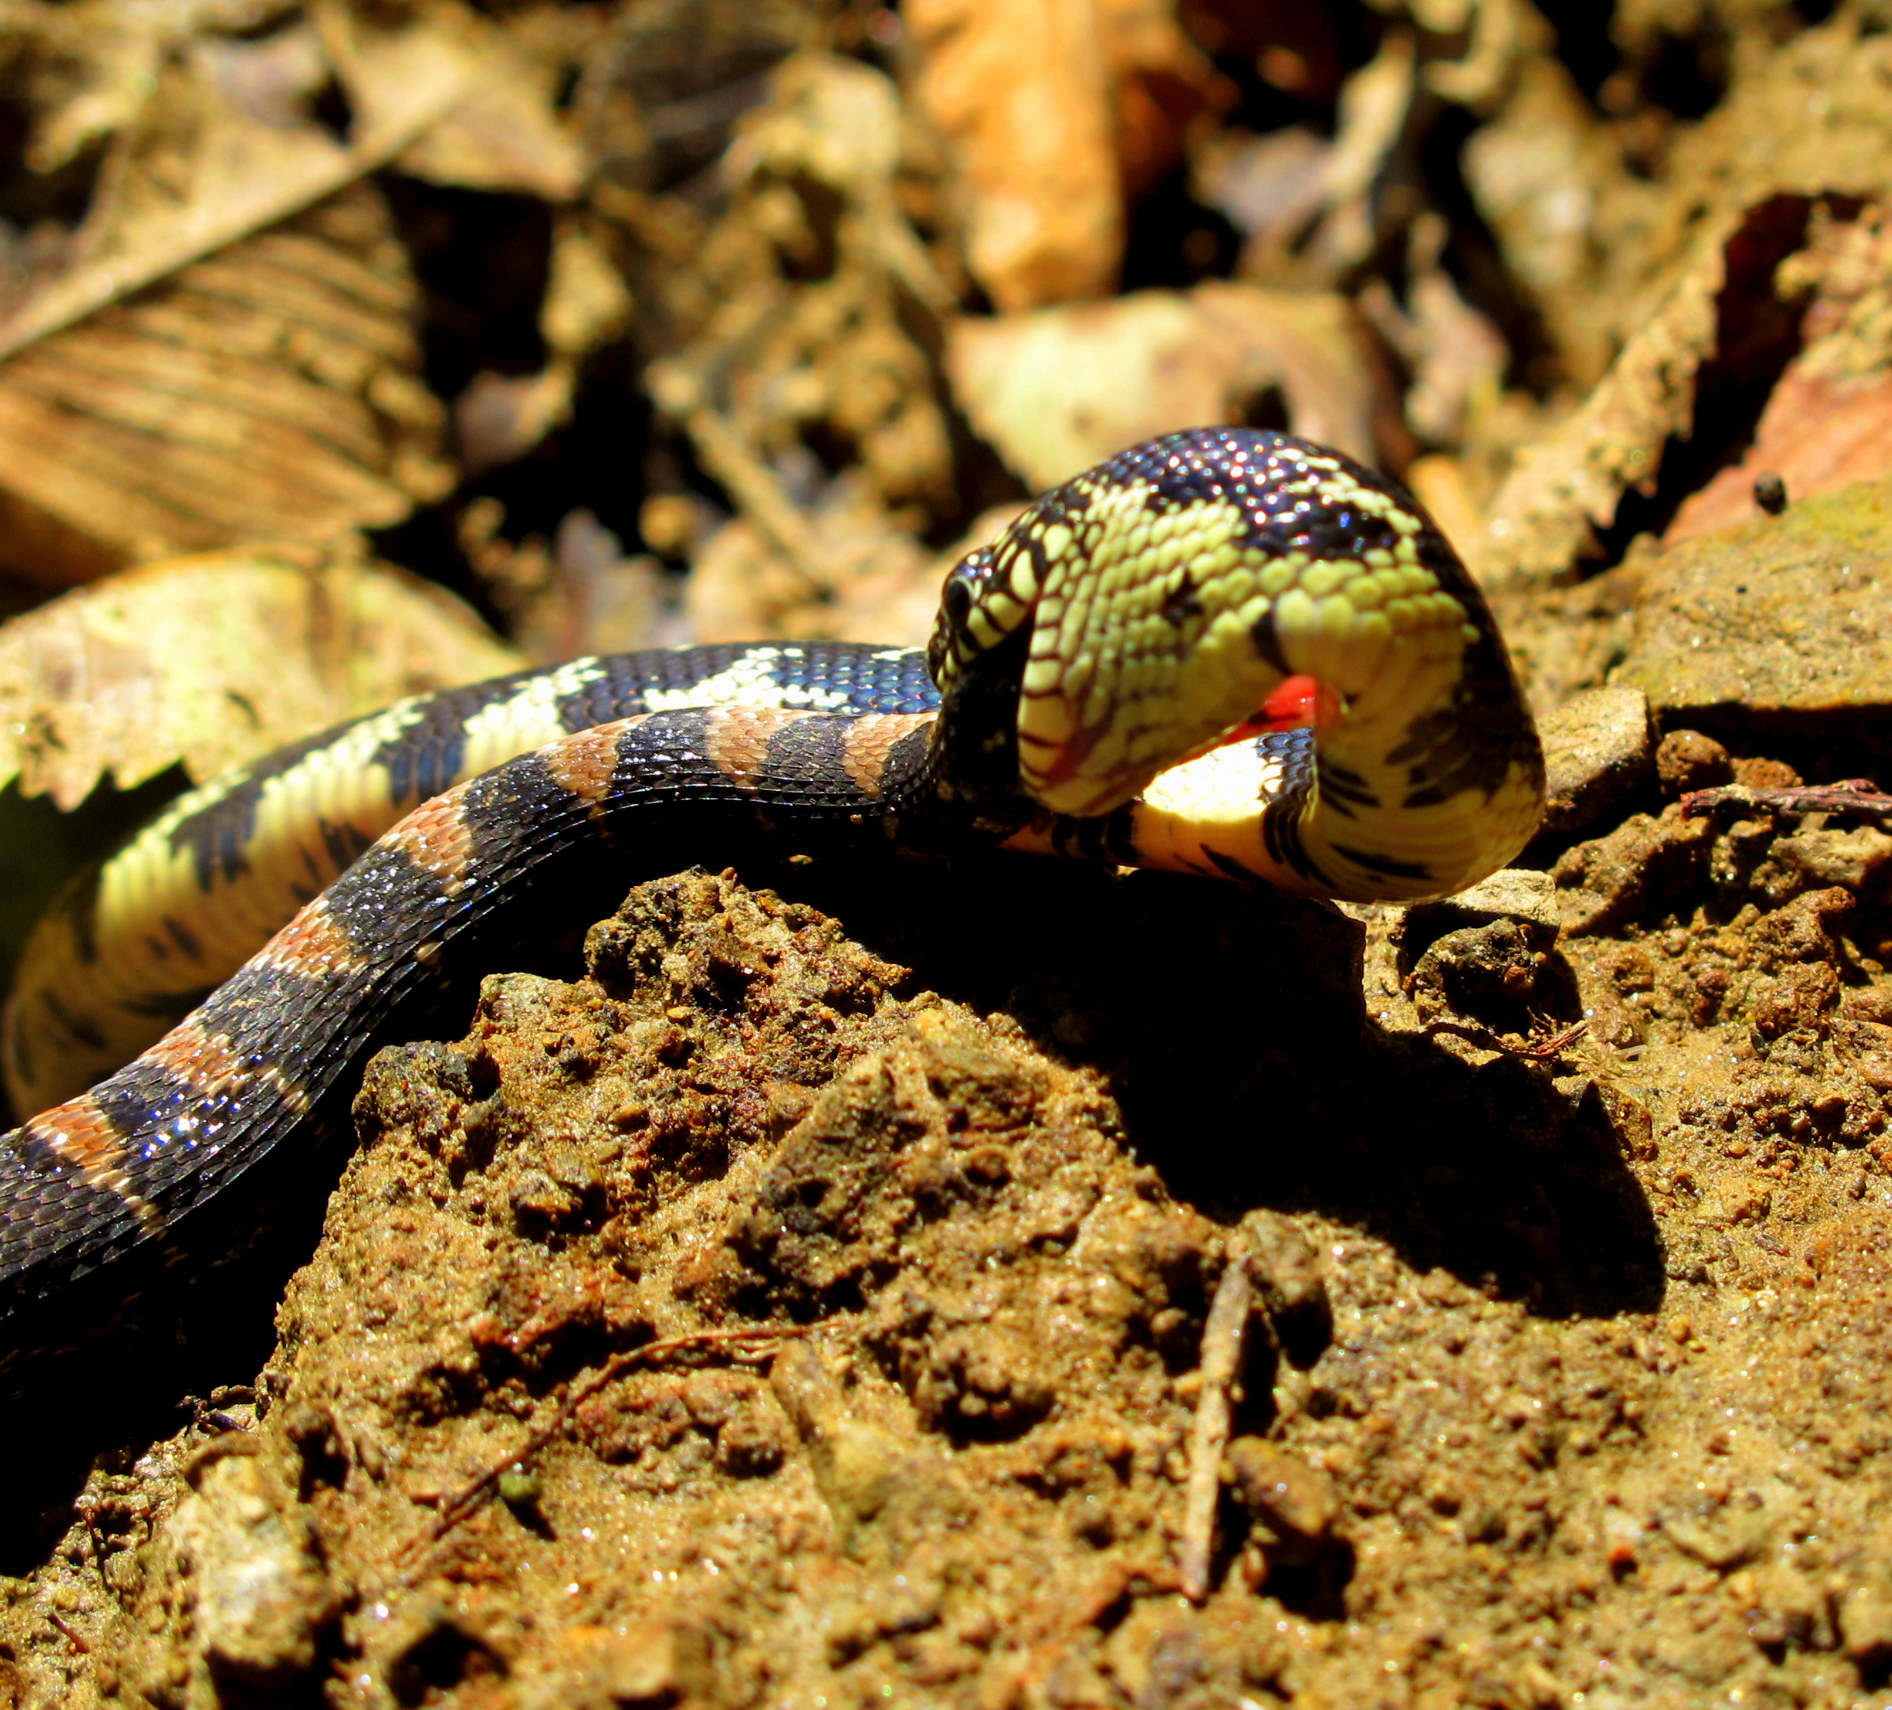 Amos Odyssey Day 16: Snake Eating Snake Wows Paddlers, But ...